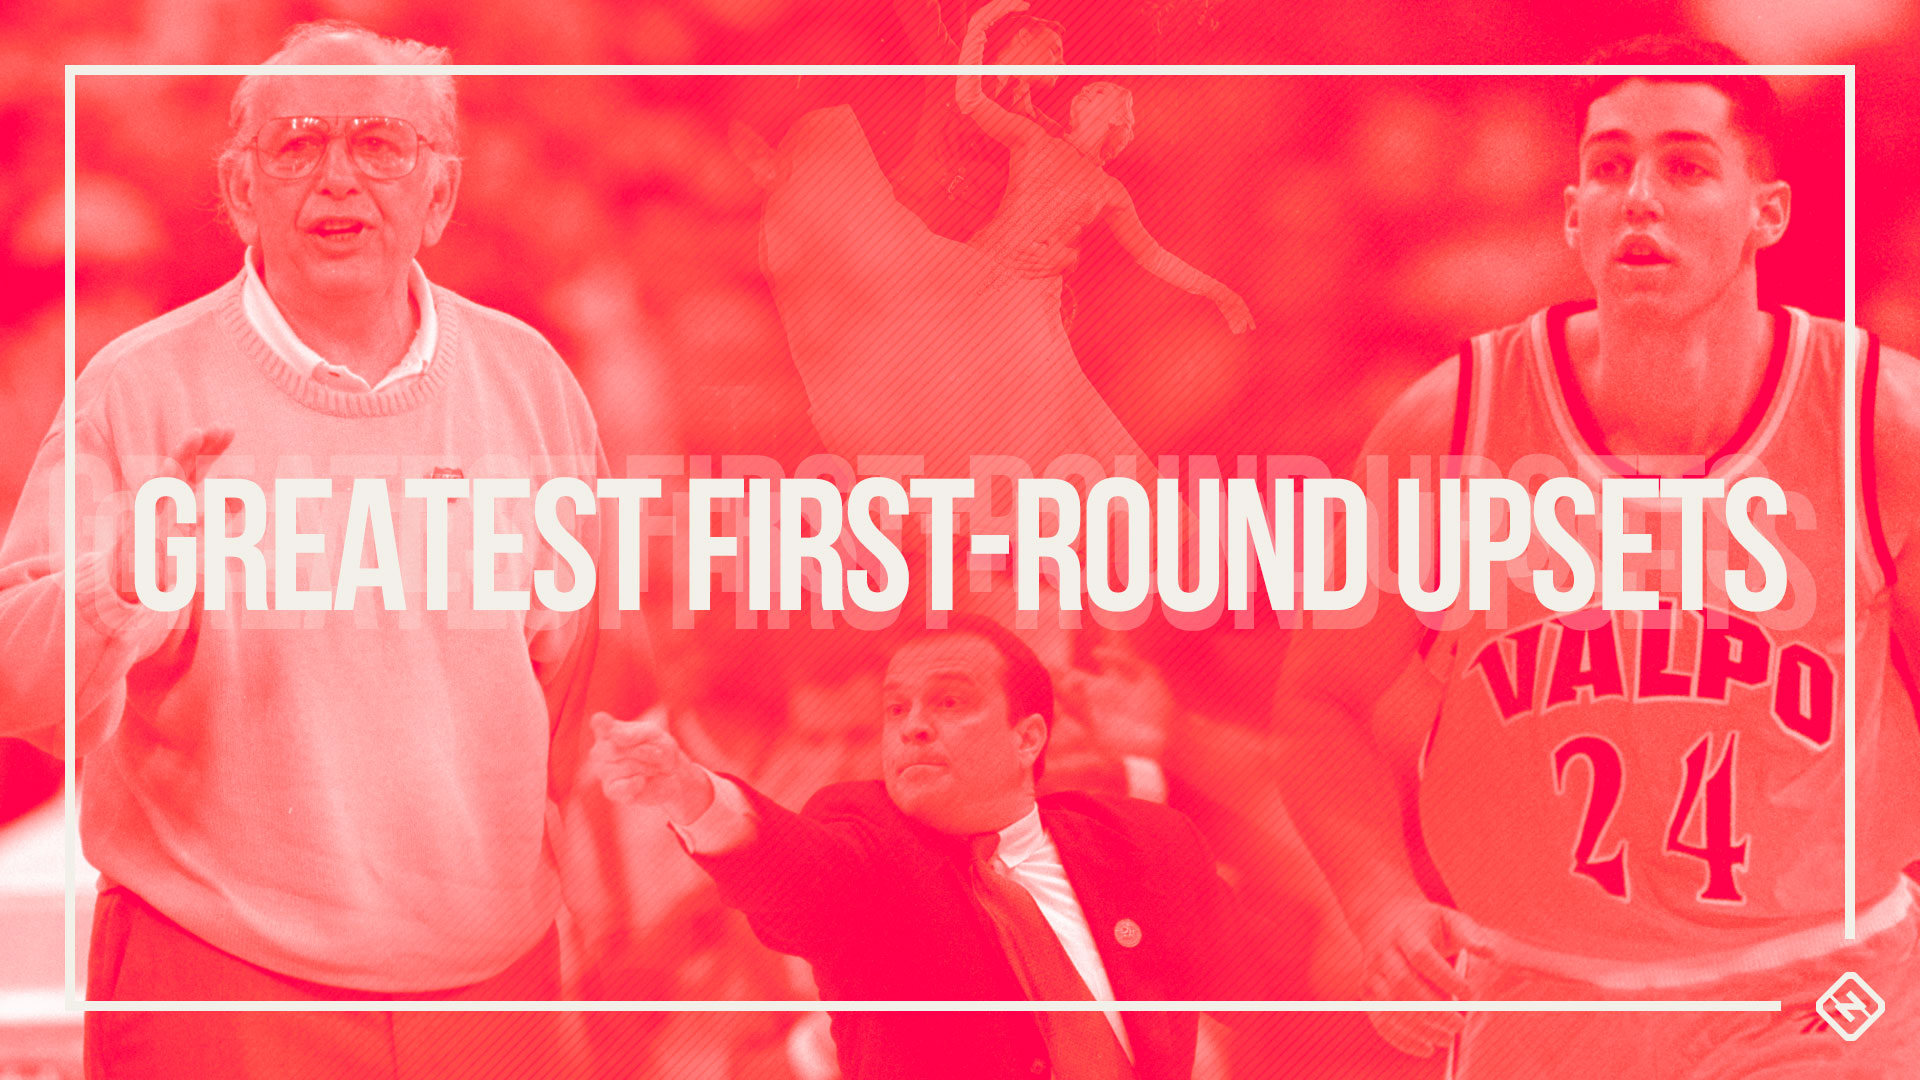 First-round-upsets-ncaa-tournament-graphic-ftrjpg_1ckge6m3timfs1a9jzrmt0rt9b